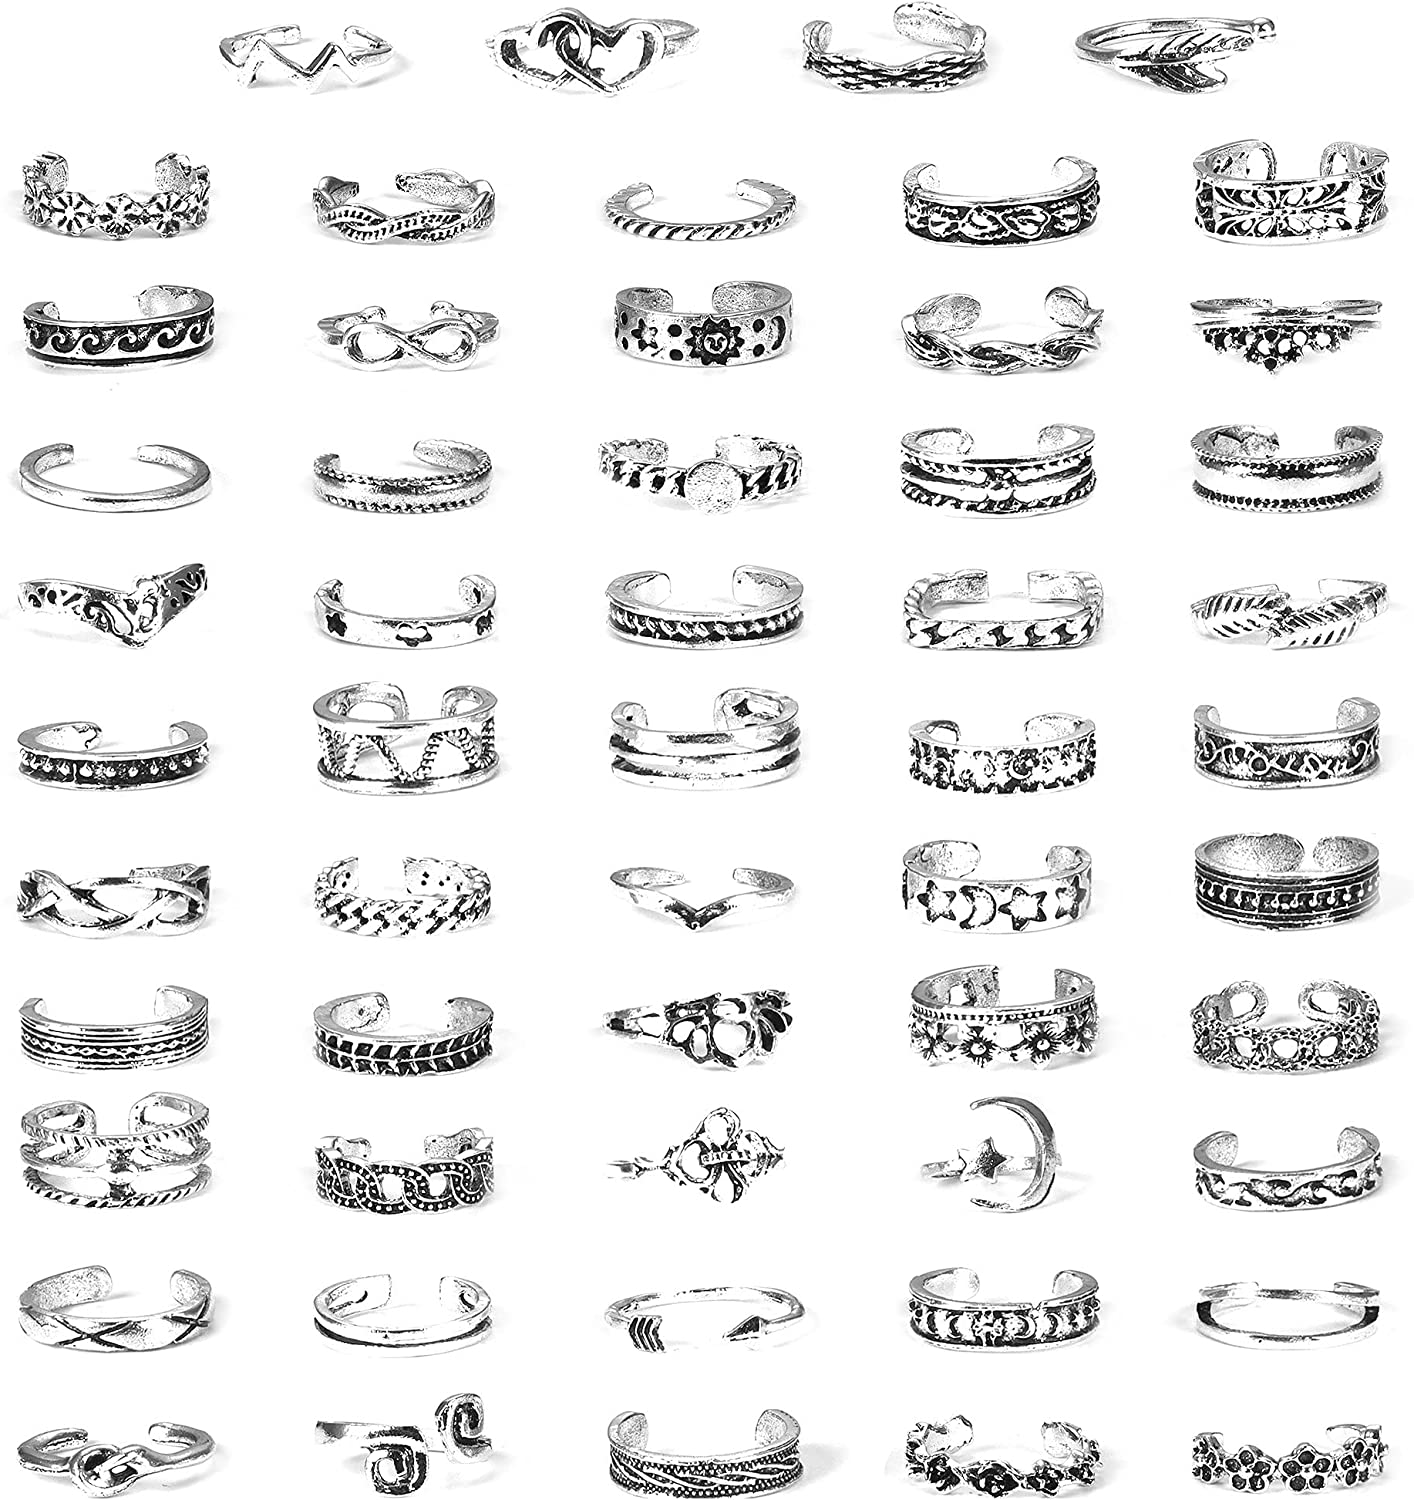 Jstyle 54 Pcs Open Toe Rings Set for Women Vintage Retro Finger Tail Ring Summer Beach Sandals Foot Jewelry